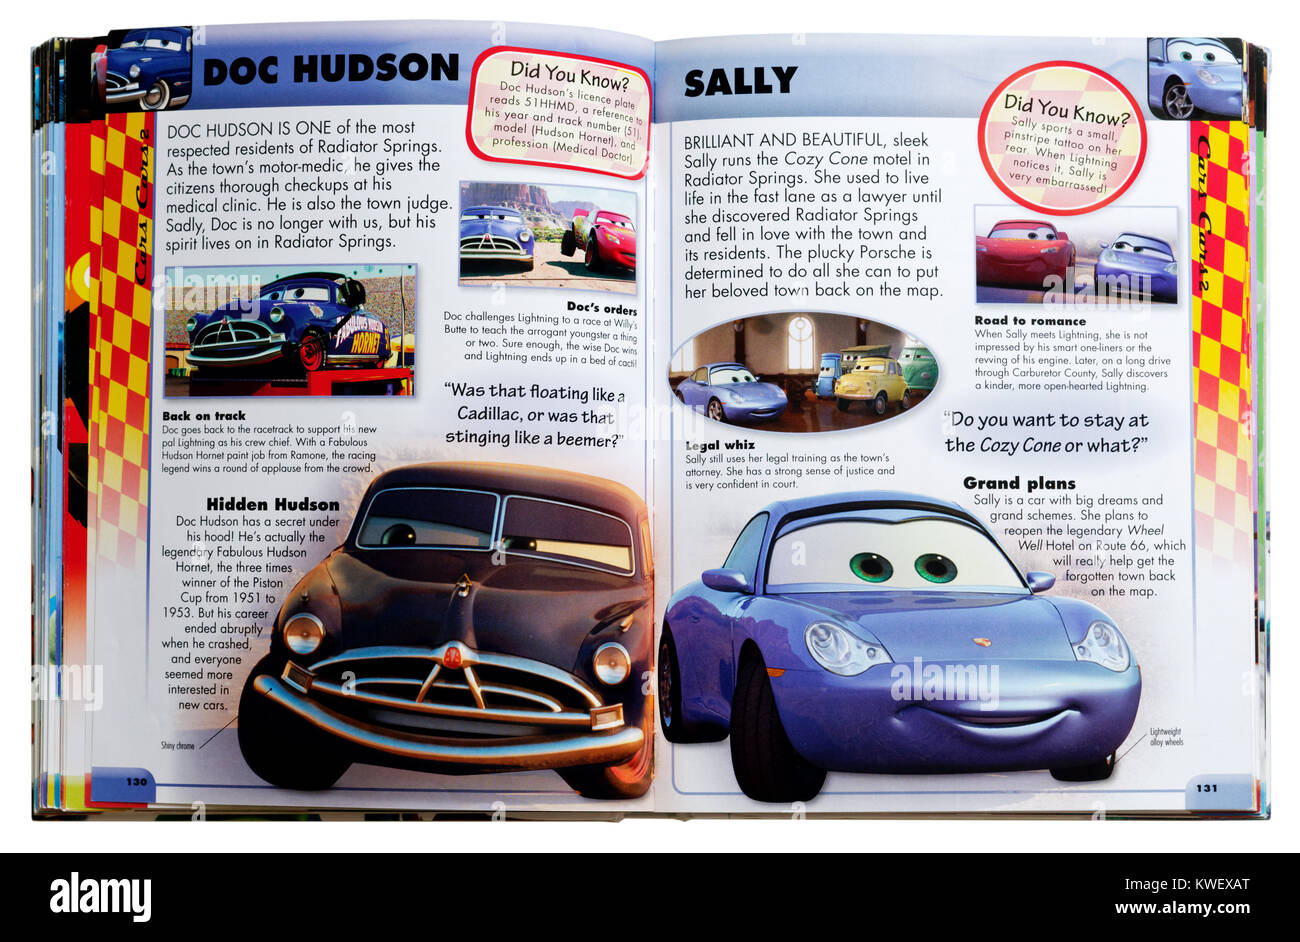 Pixar Character Design Tips : Pixar cars stock photos images alamy